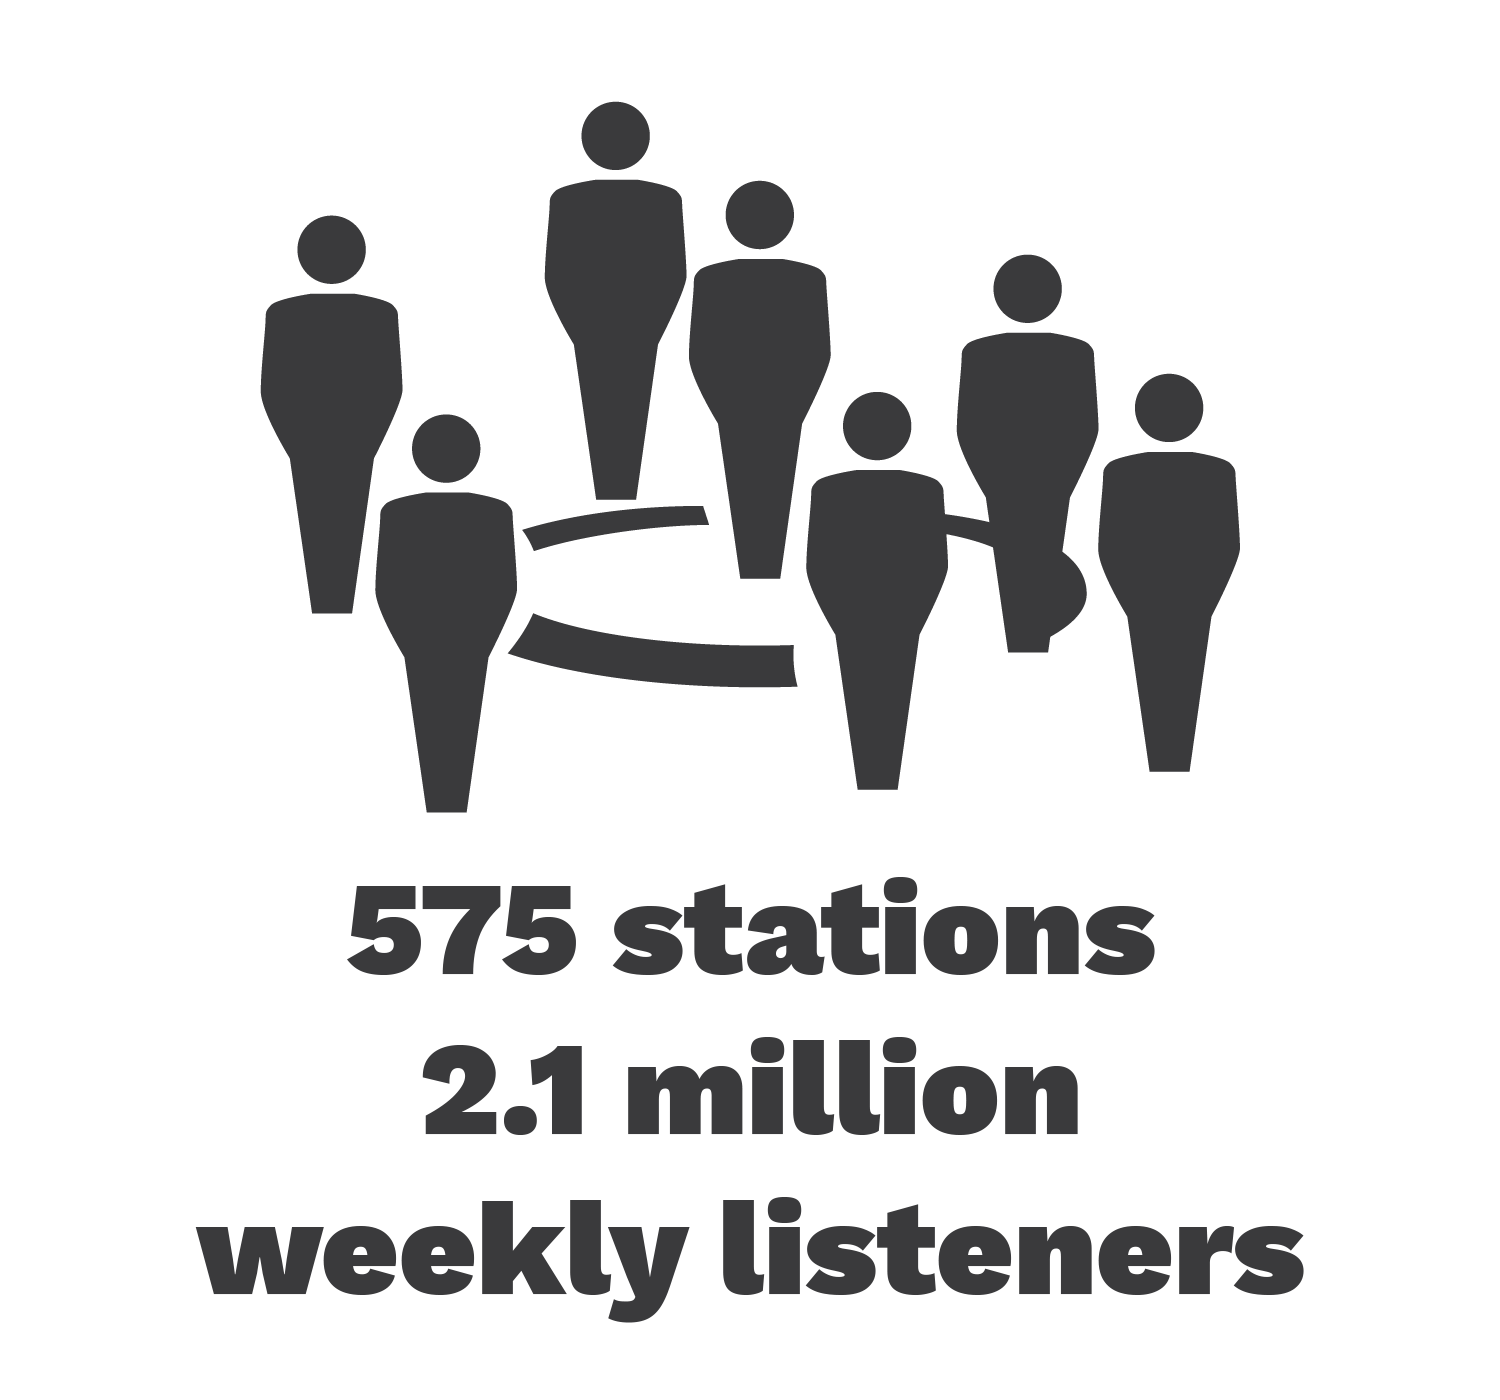 575 stations, 2.1 million weekly listeners